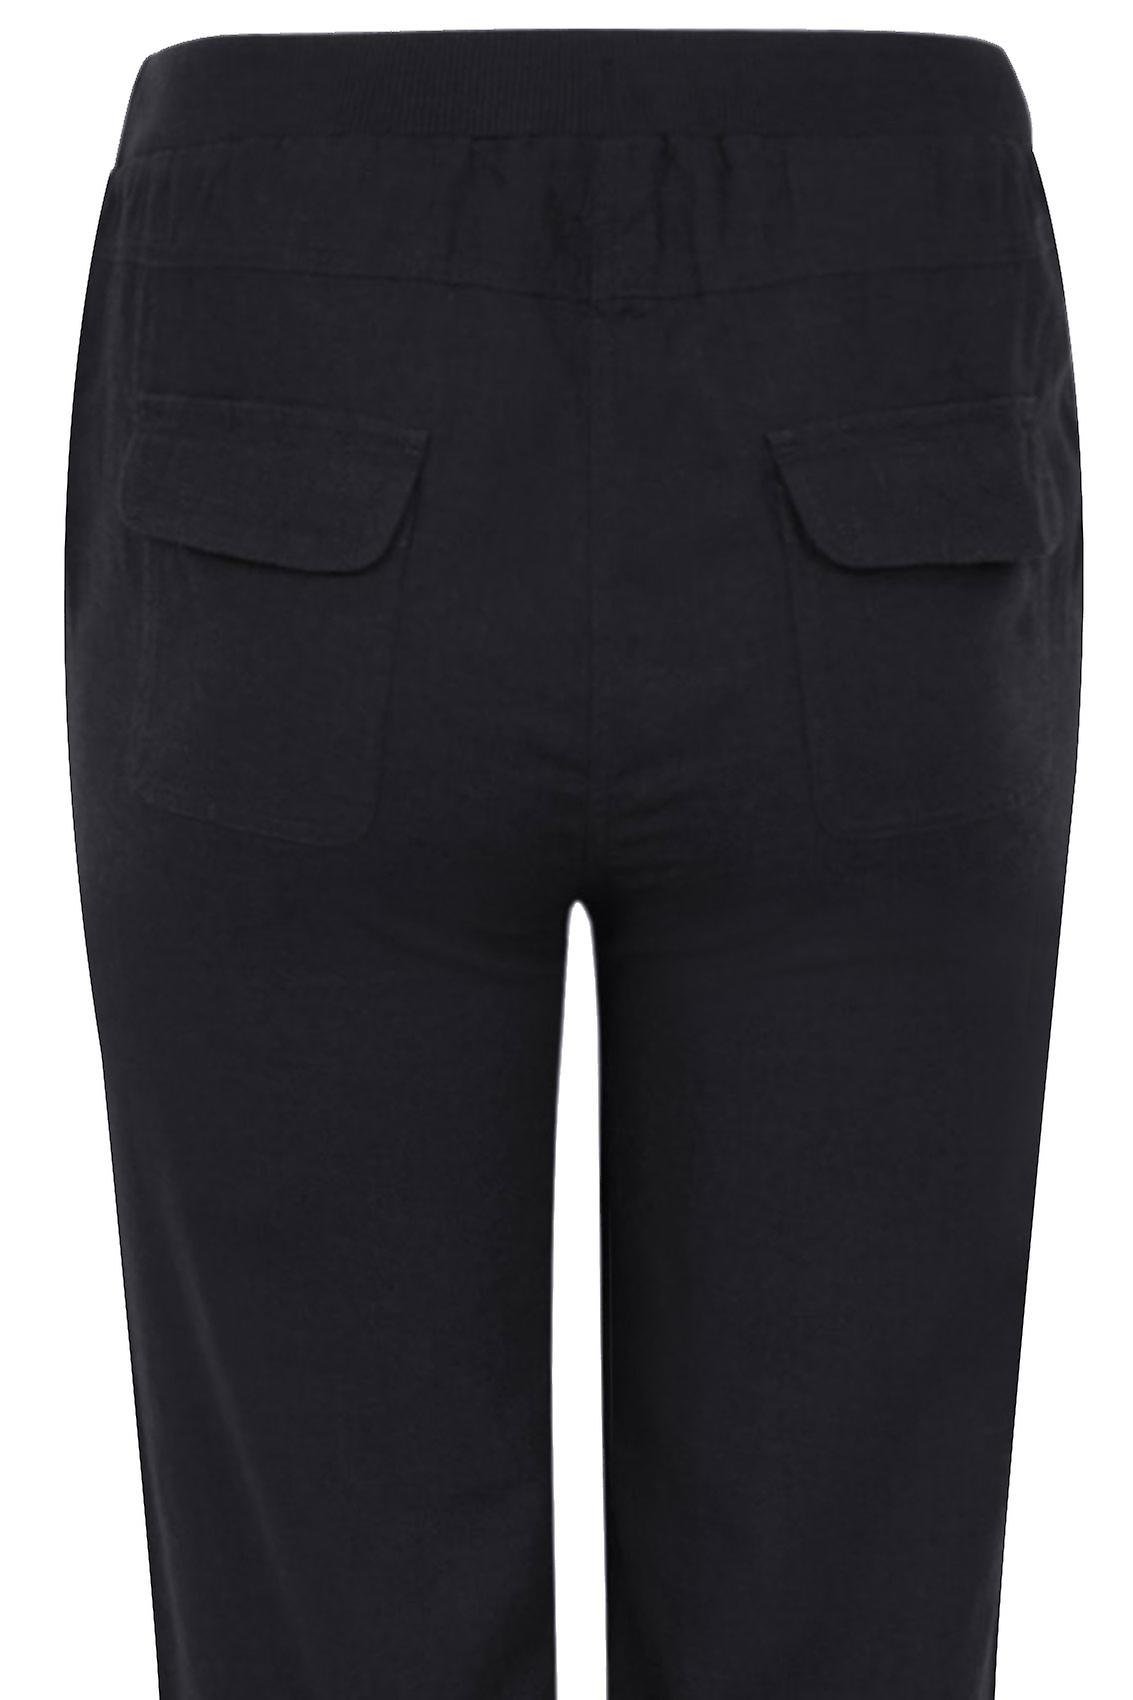 Black Linen Mix Full Length Trousers With Four Pockets 30